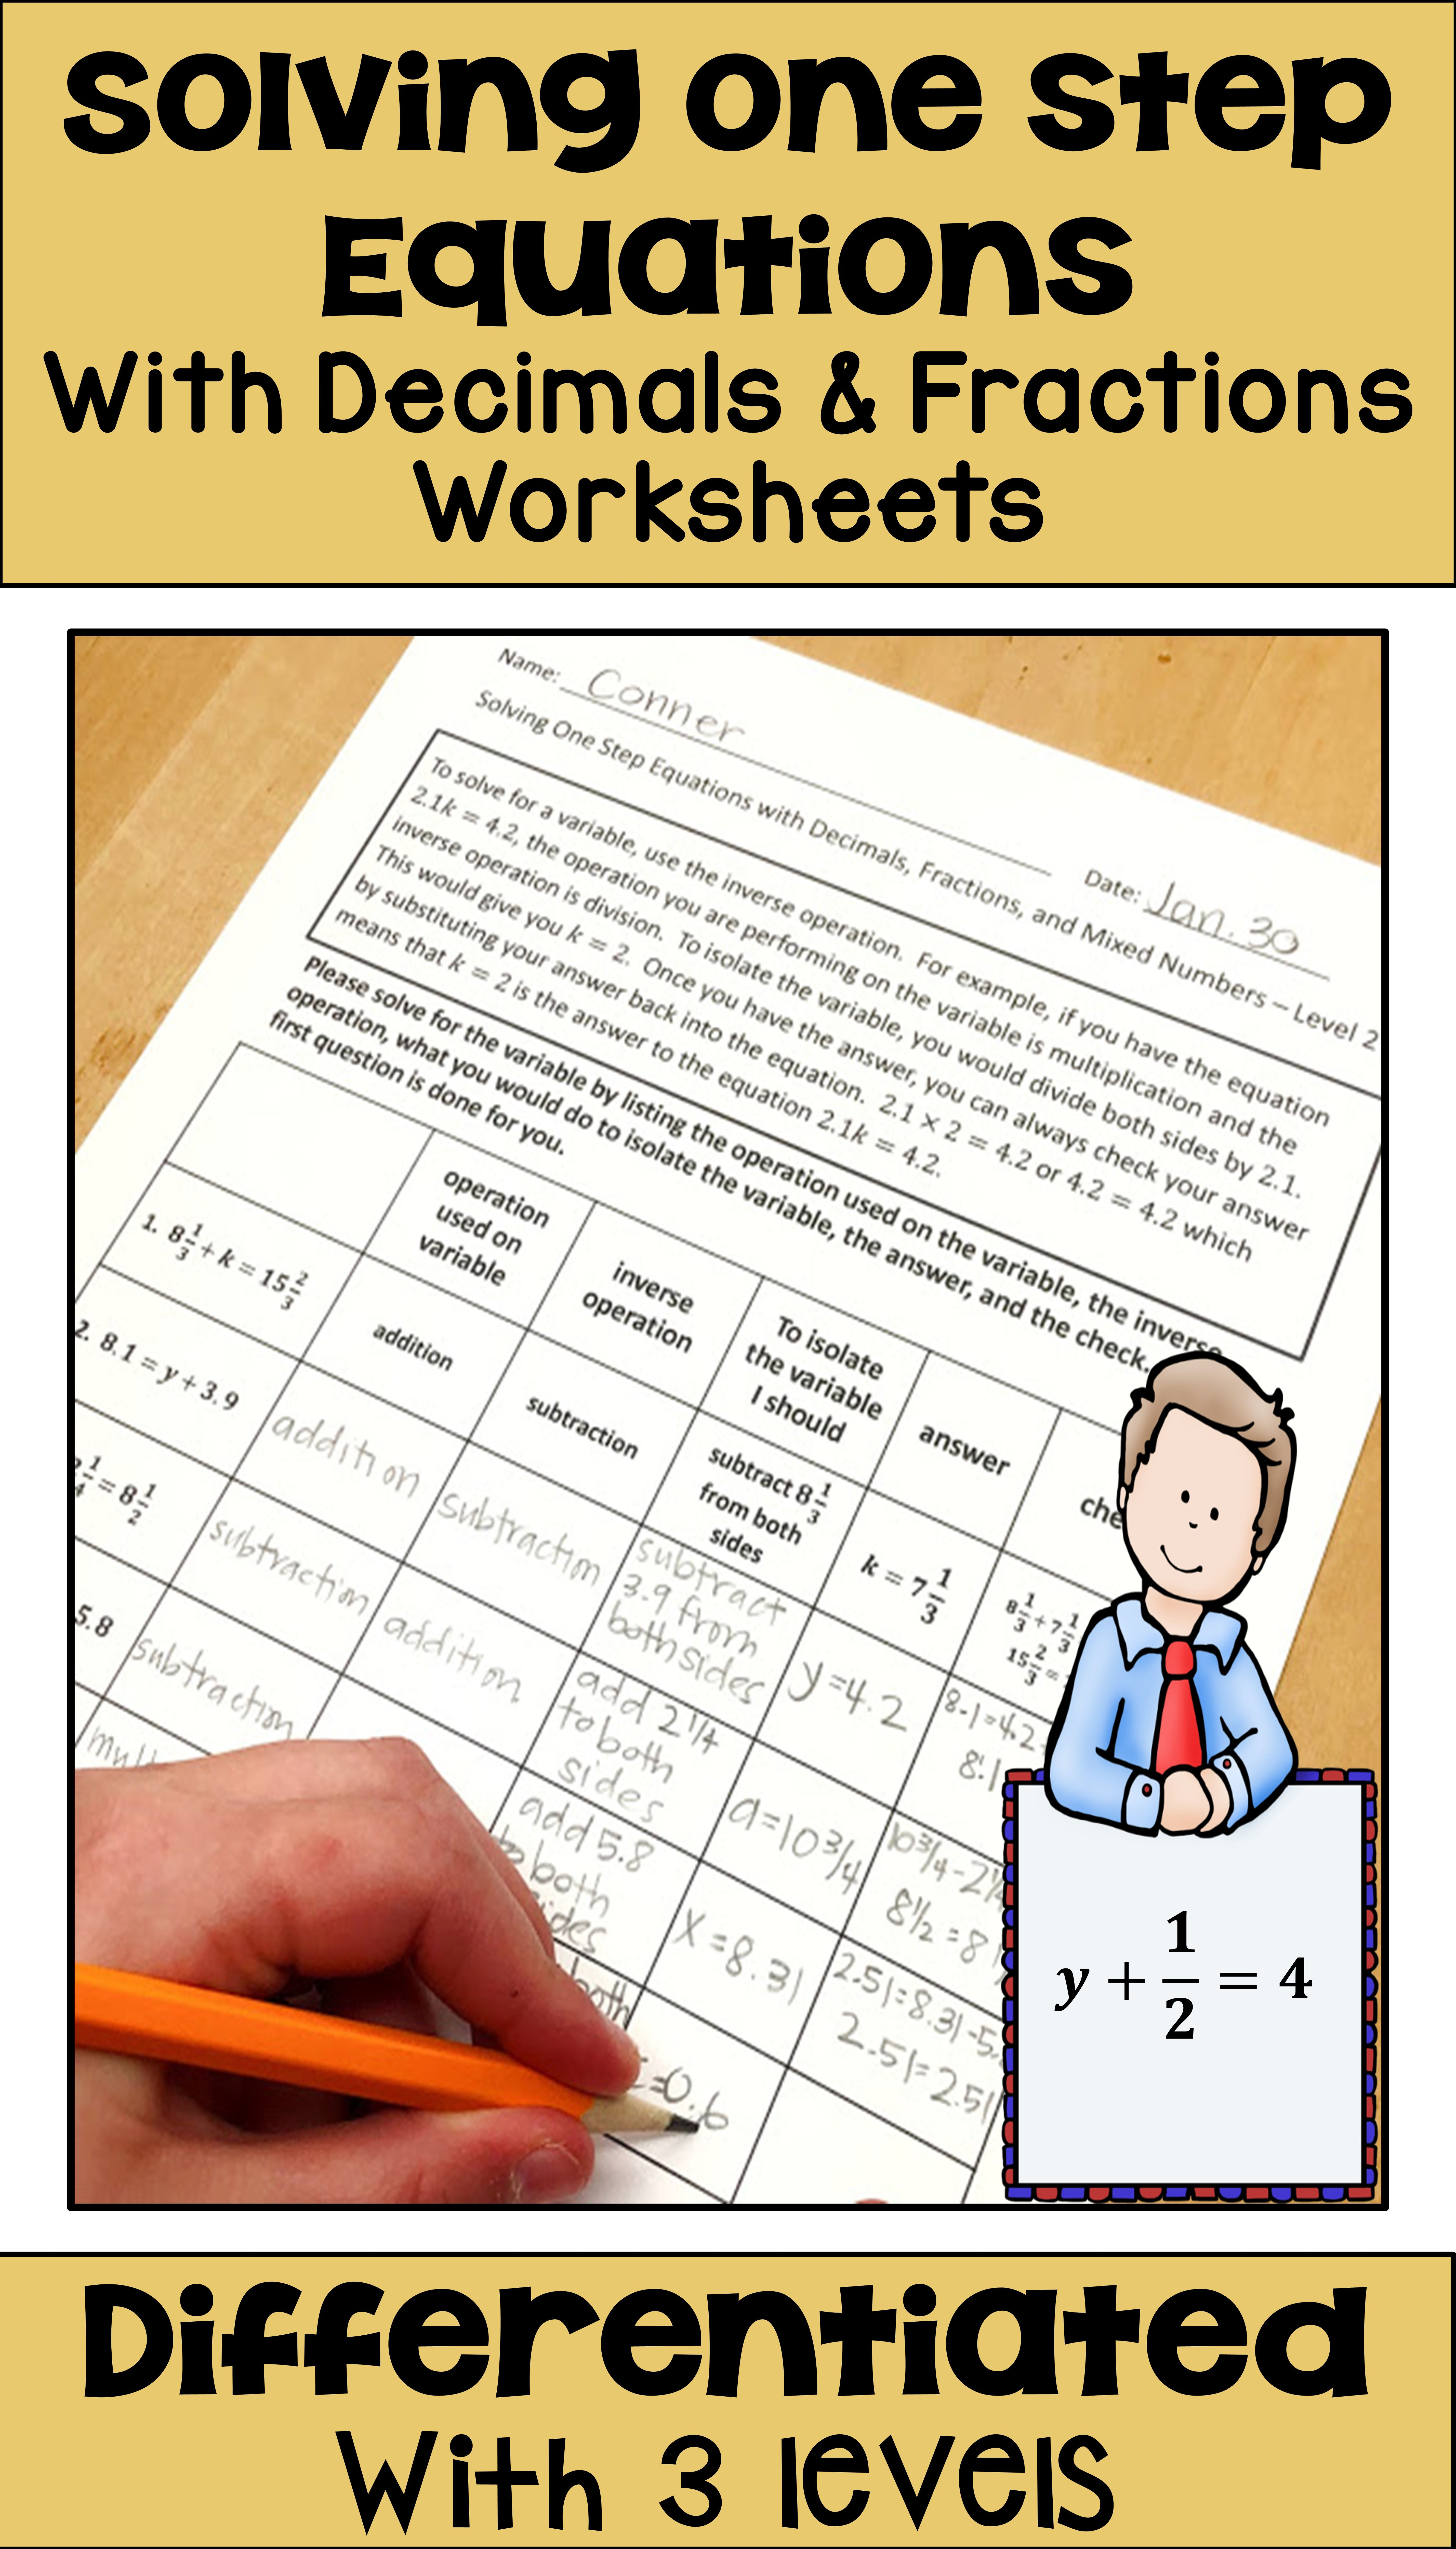 Solving One Step Equations With Fractions And Decimals Worksheets Using Notes And Steps For Solving One Step Equations Fractions Equations Solve addition equations with decimals